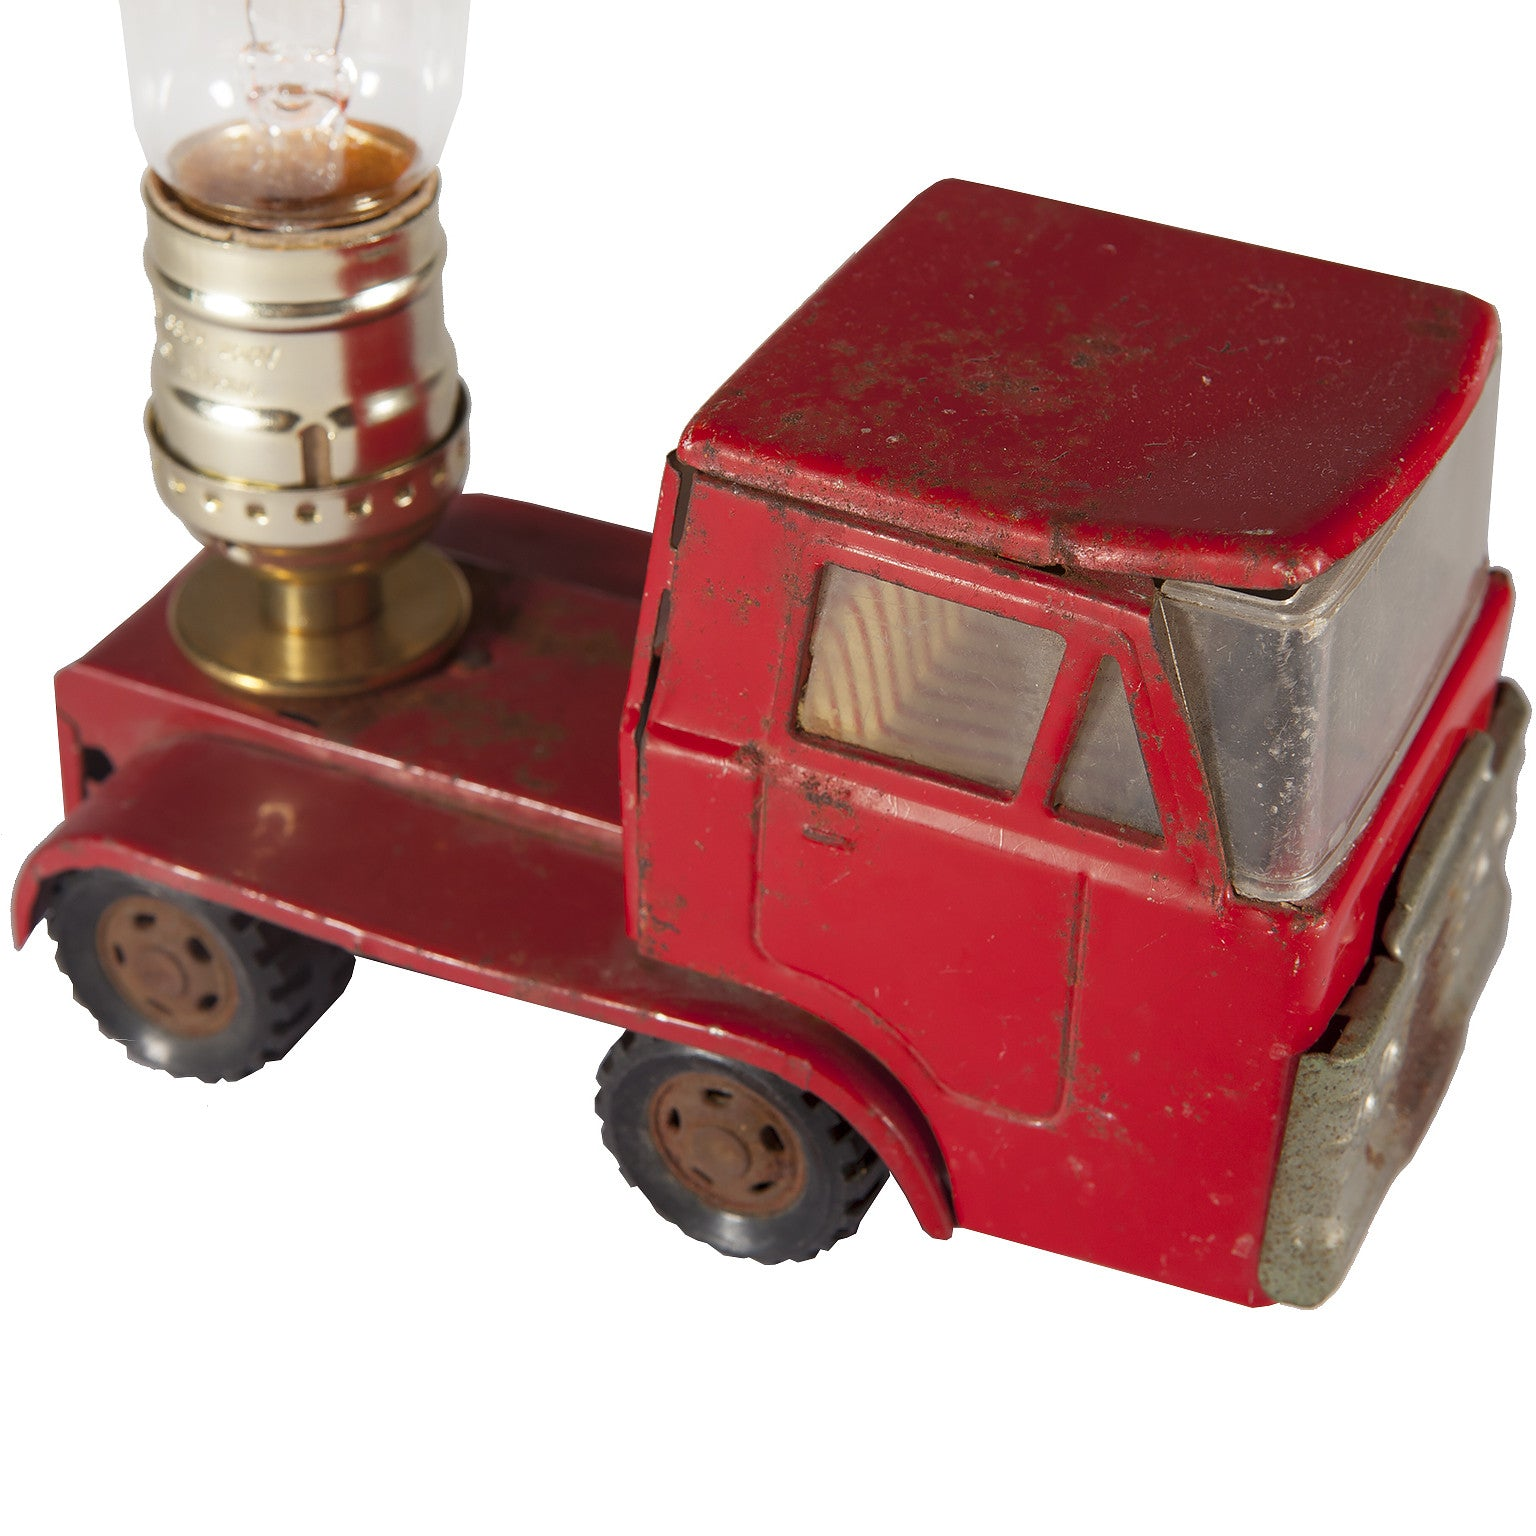 Red Truck Lamp : Vintage red truck cab mini lamp